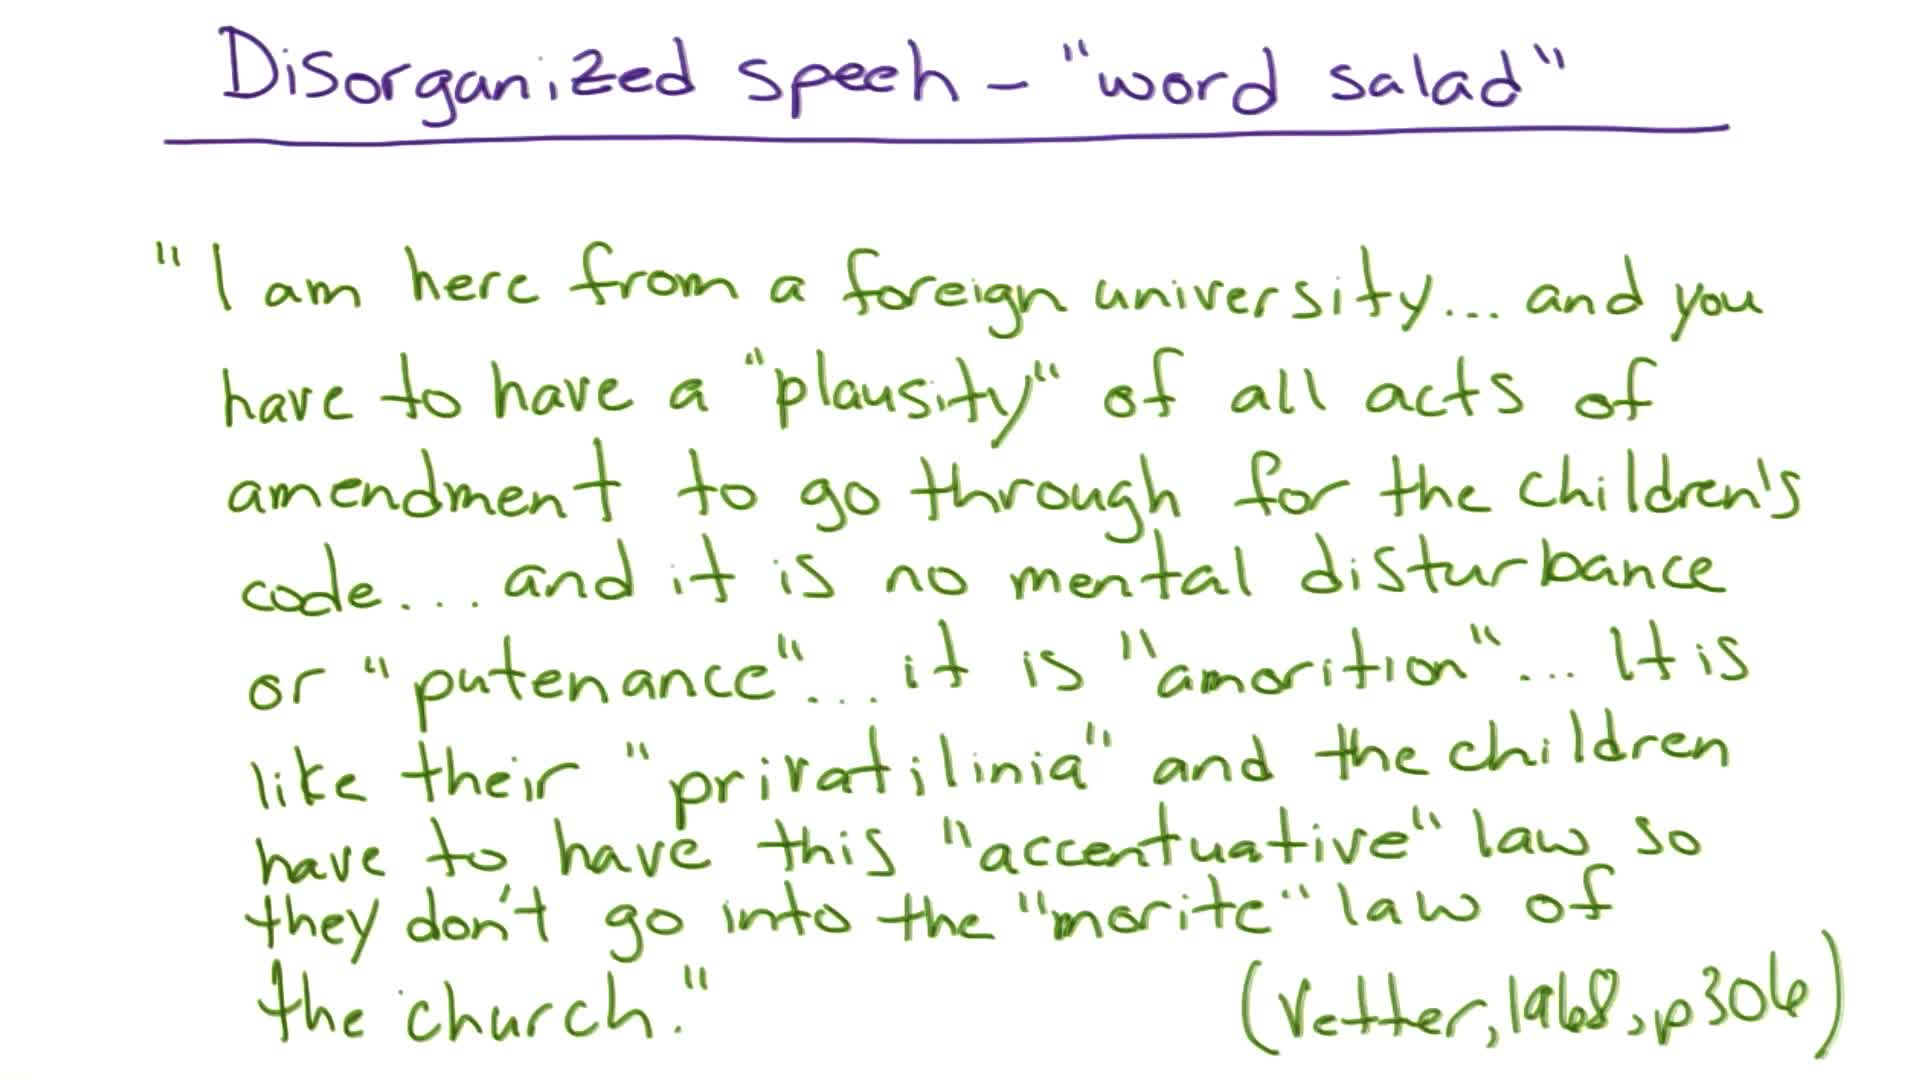 Disorganized Speech Udacity